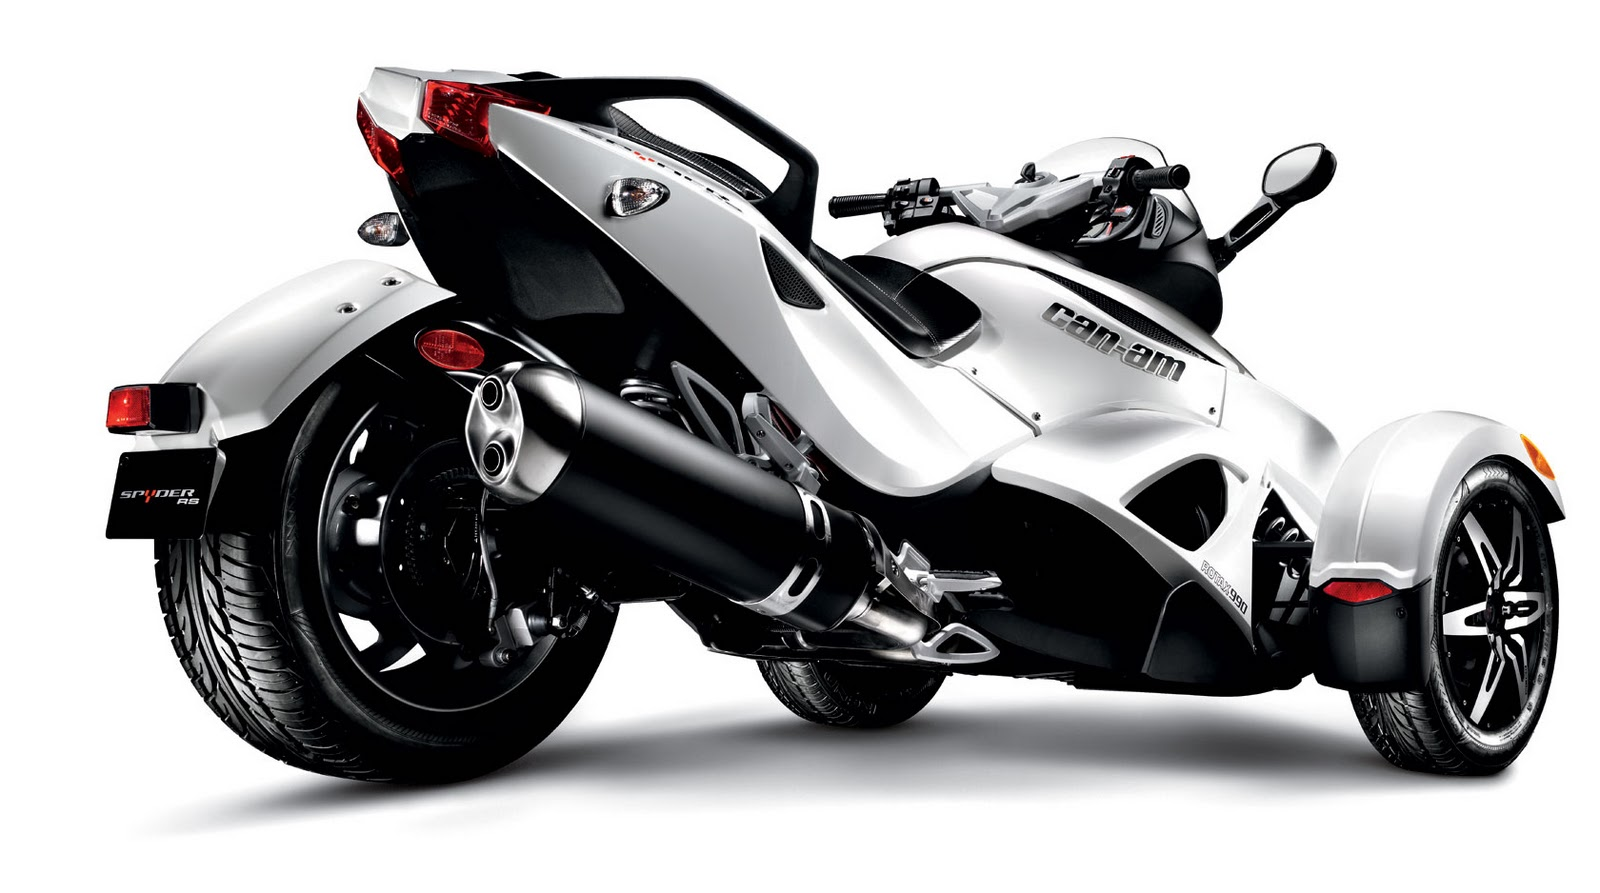 sports bike blog latest bikes bikes in 2012 2011 can am spyder rs images. Black Bedroom Furniture Sets. Home Design Ideas